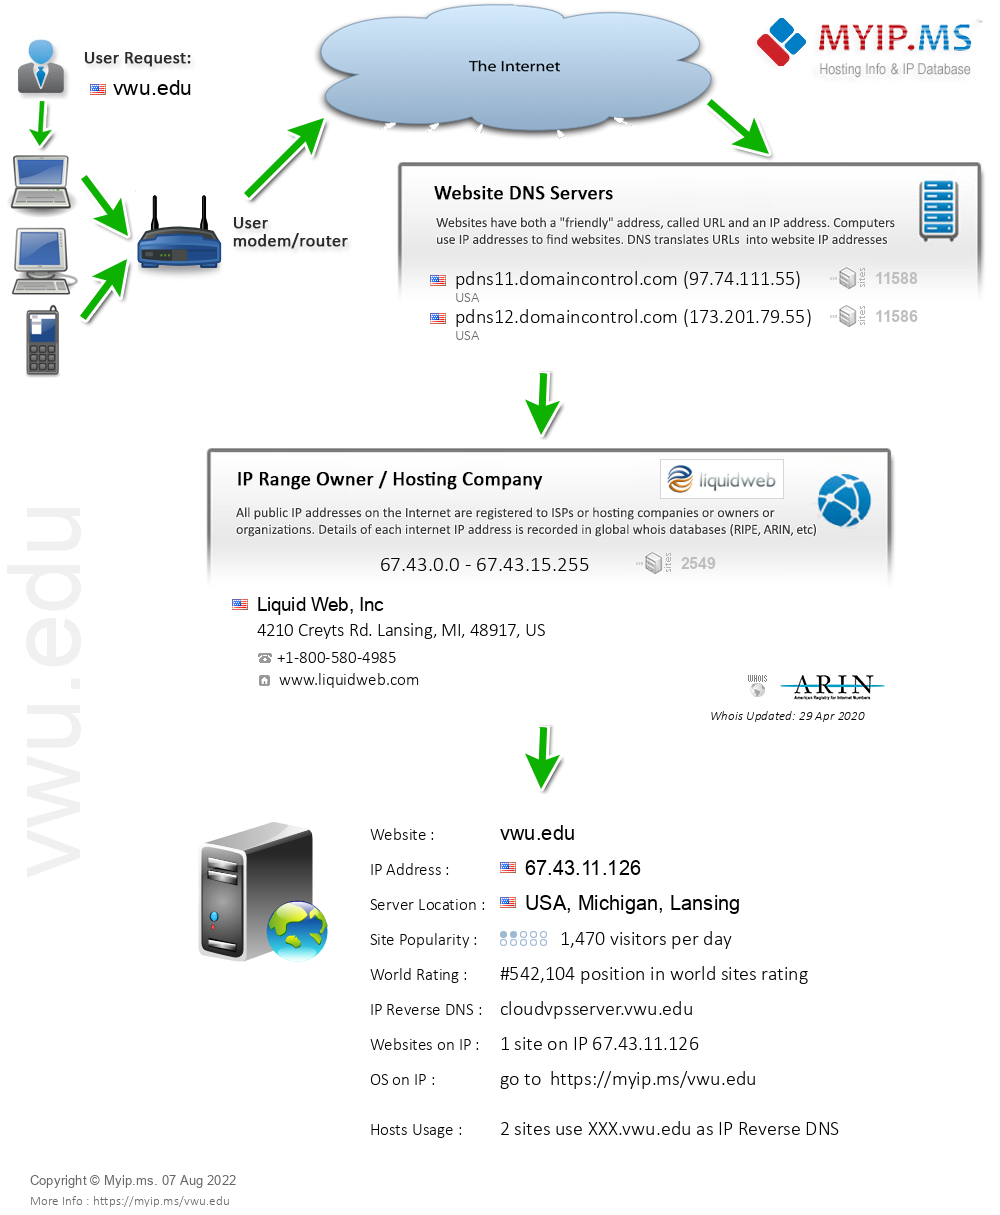 Vwu.edu - Website Hosting Visual IP Diagram